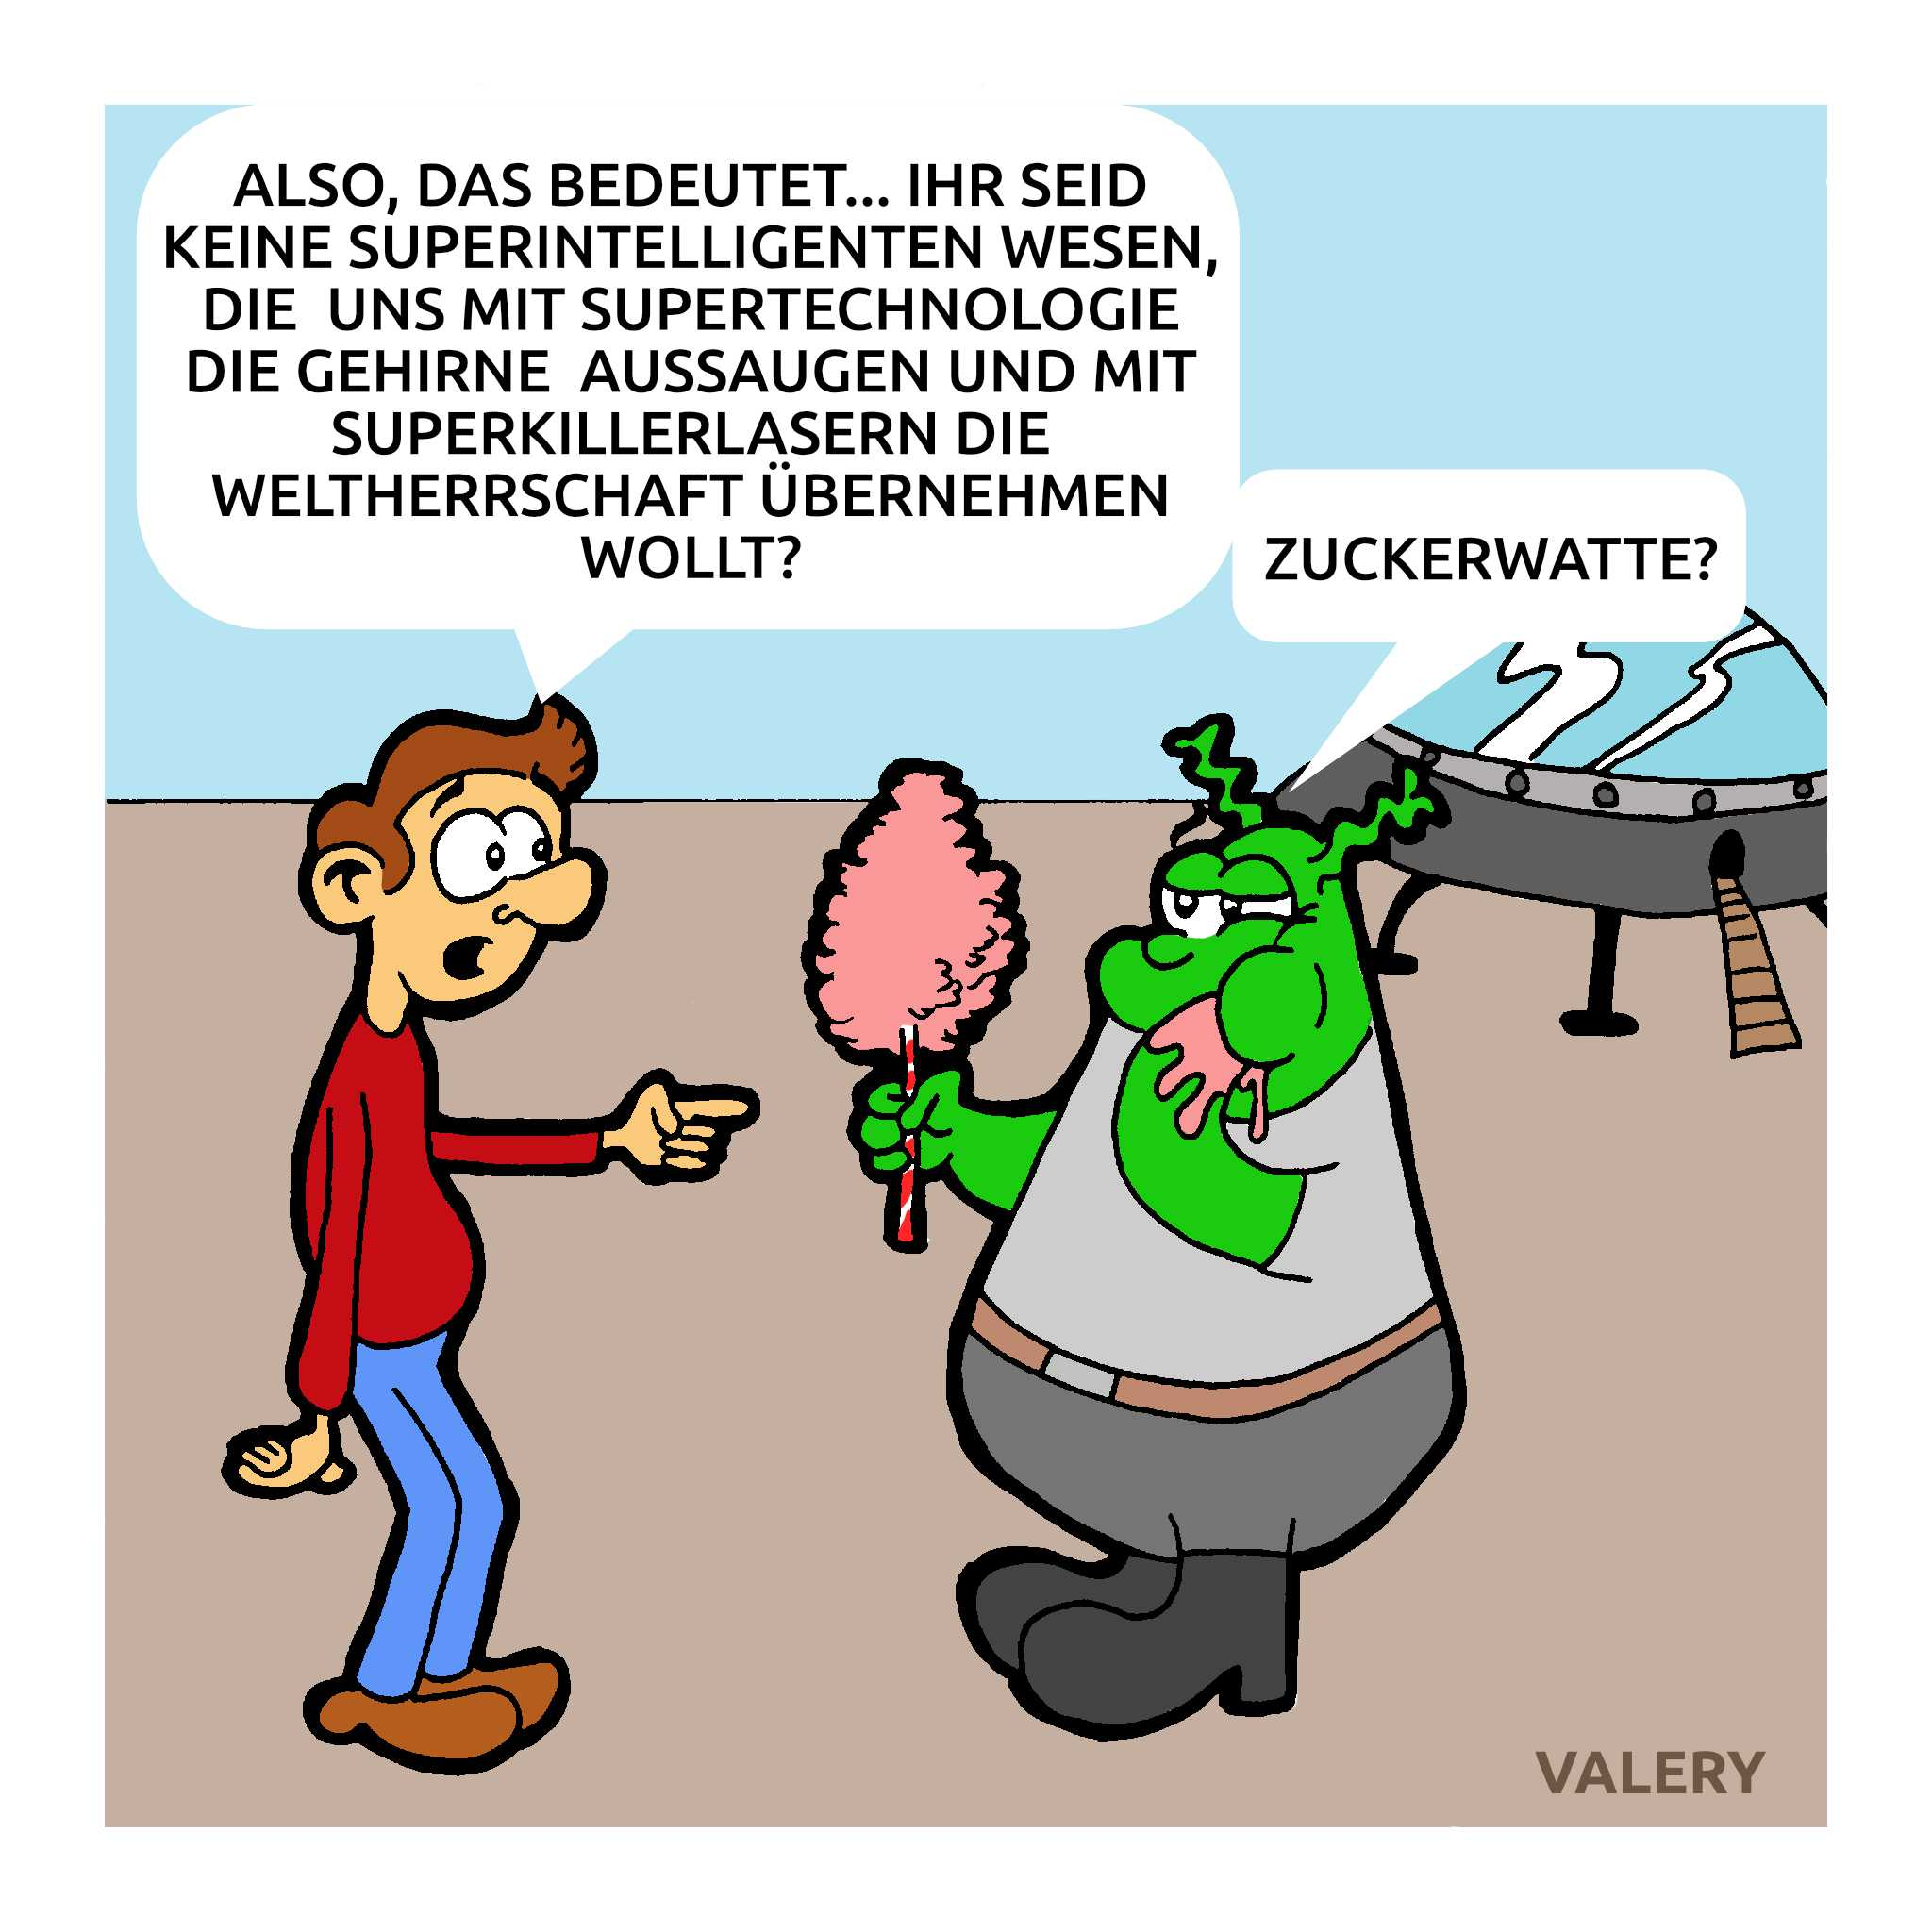 Alien Intelligent Zuckerwatte Cartoon